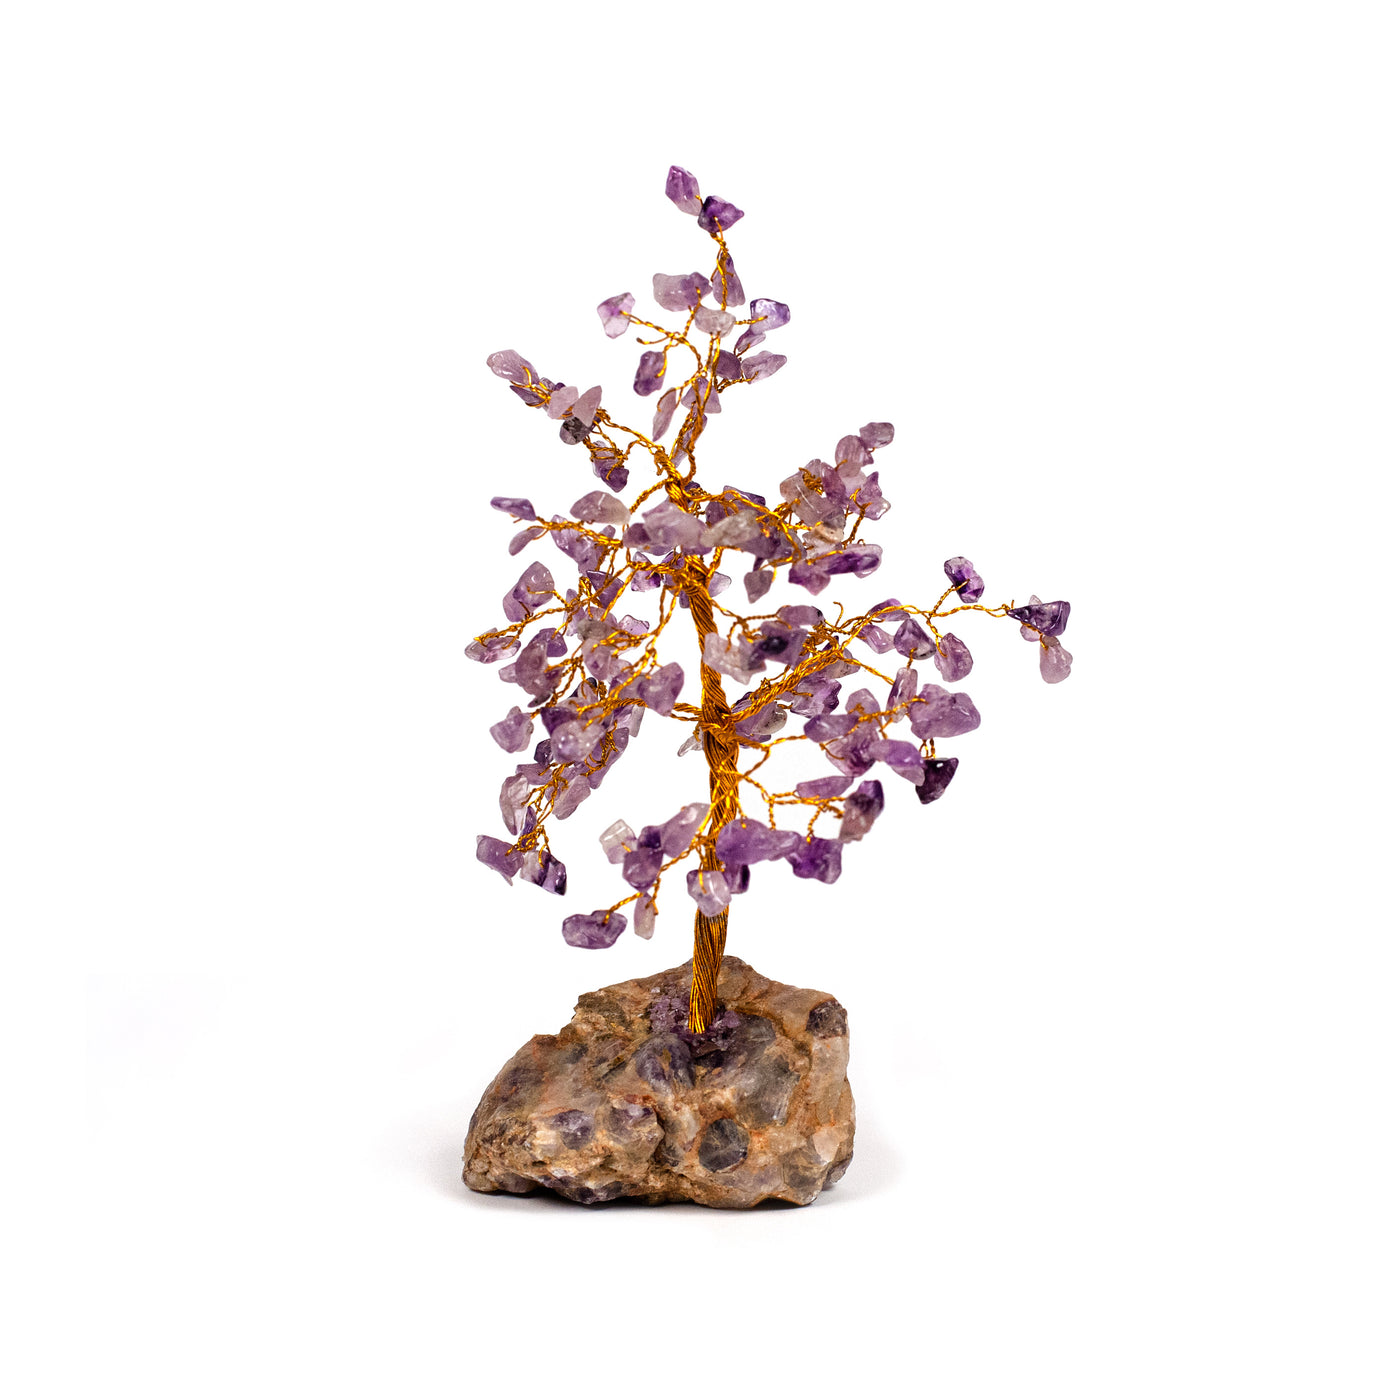 Amethyst Tree - Sympathy Crystal - Healing Hearts Journey | Sympathy Gifts & Condolences Keepsakes